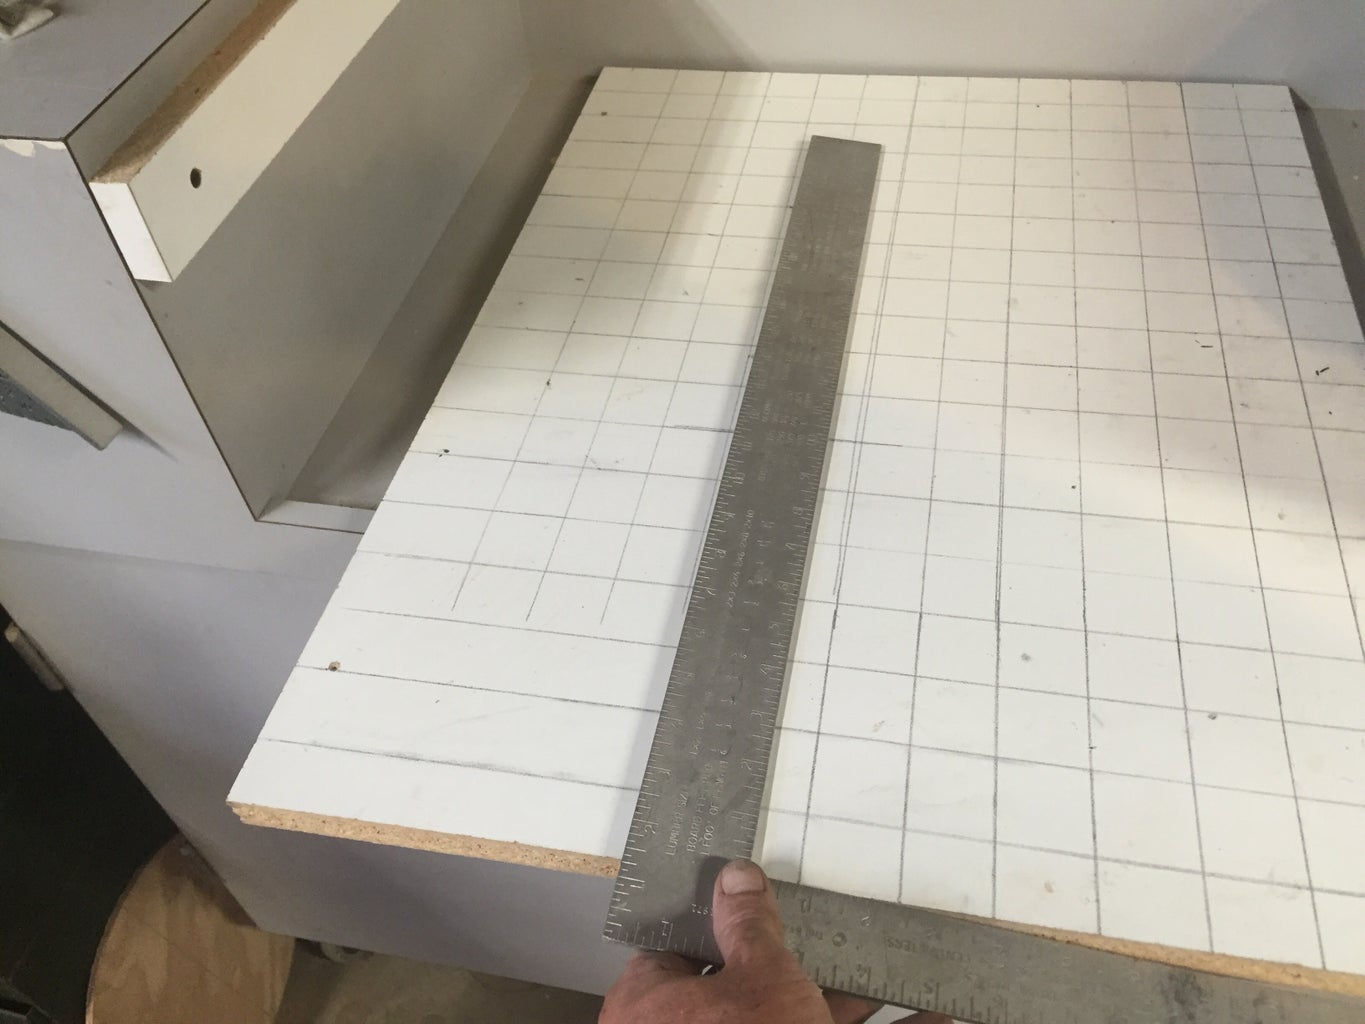 Lay Out and Drill a Grid